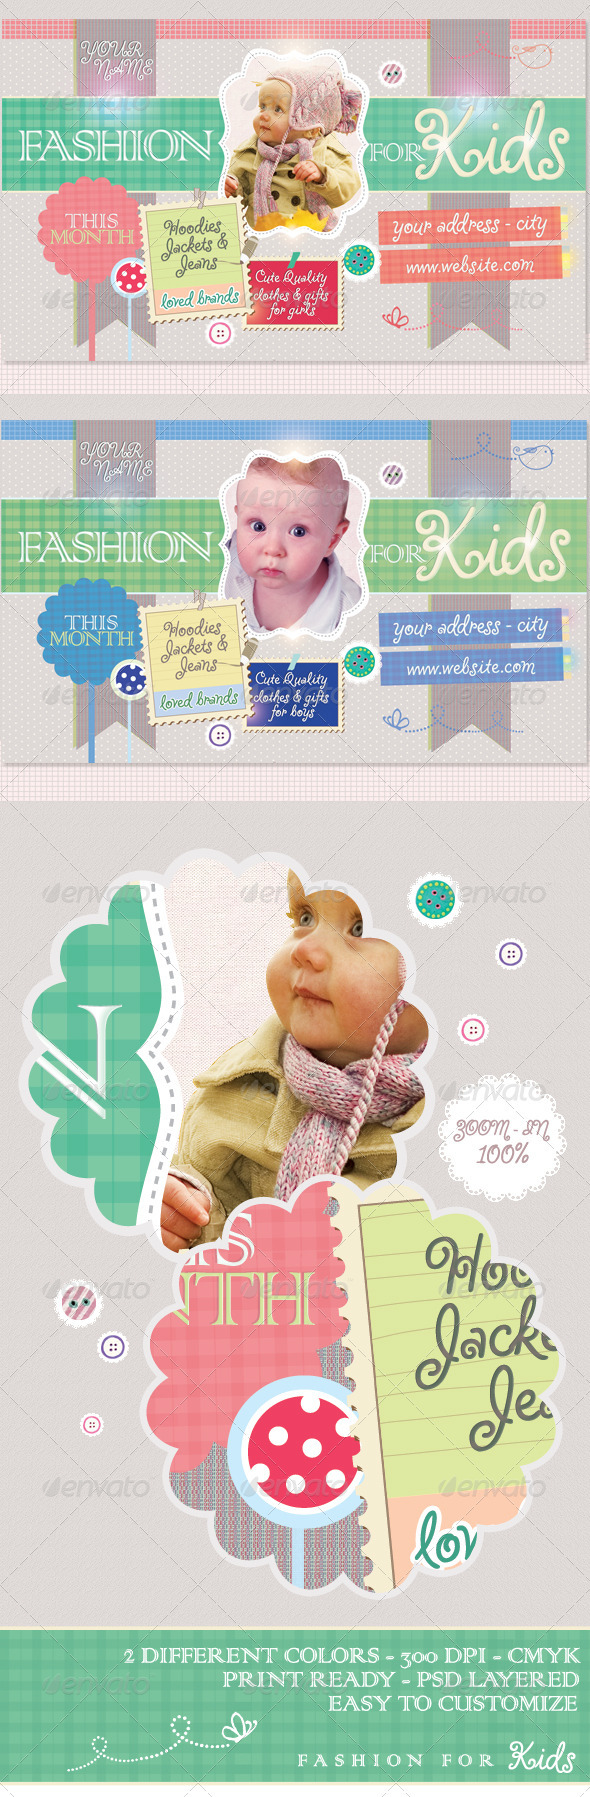 GraphicRiver Fashion For Kids Flyer Template 1253091